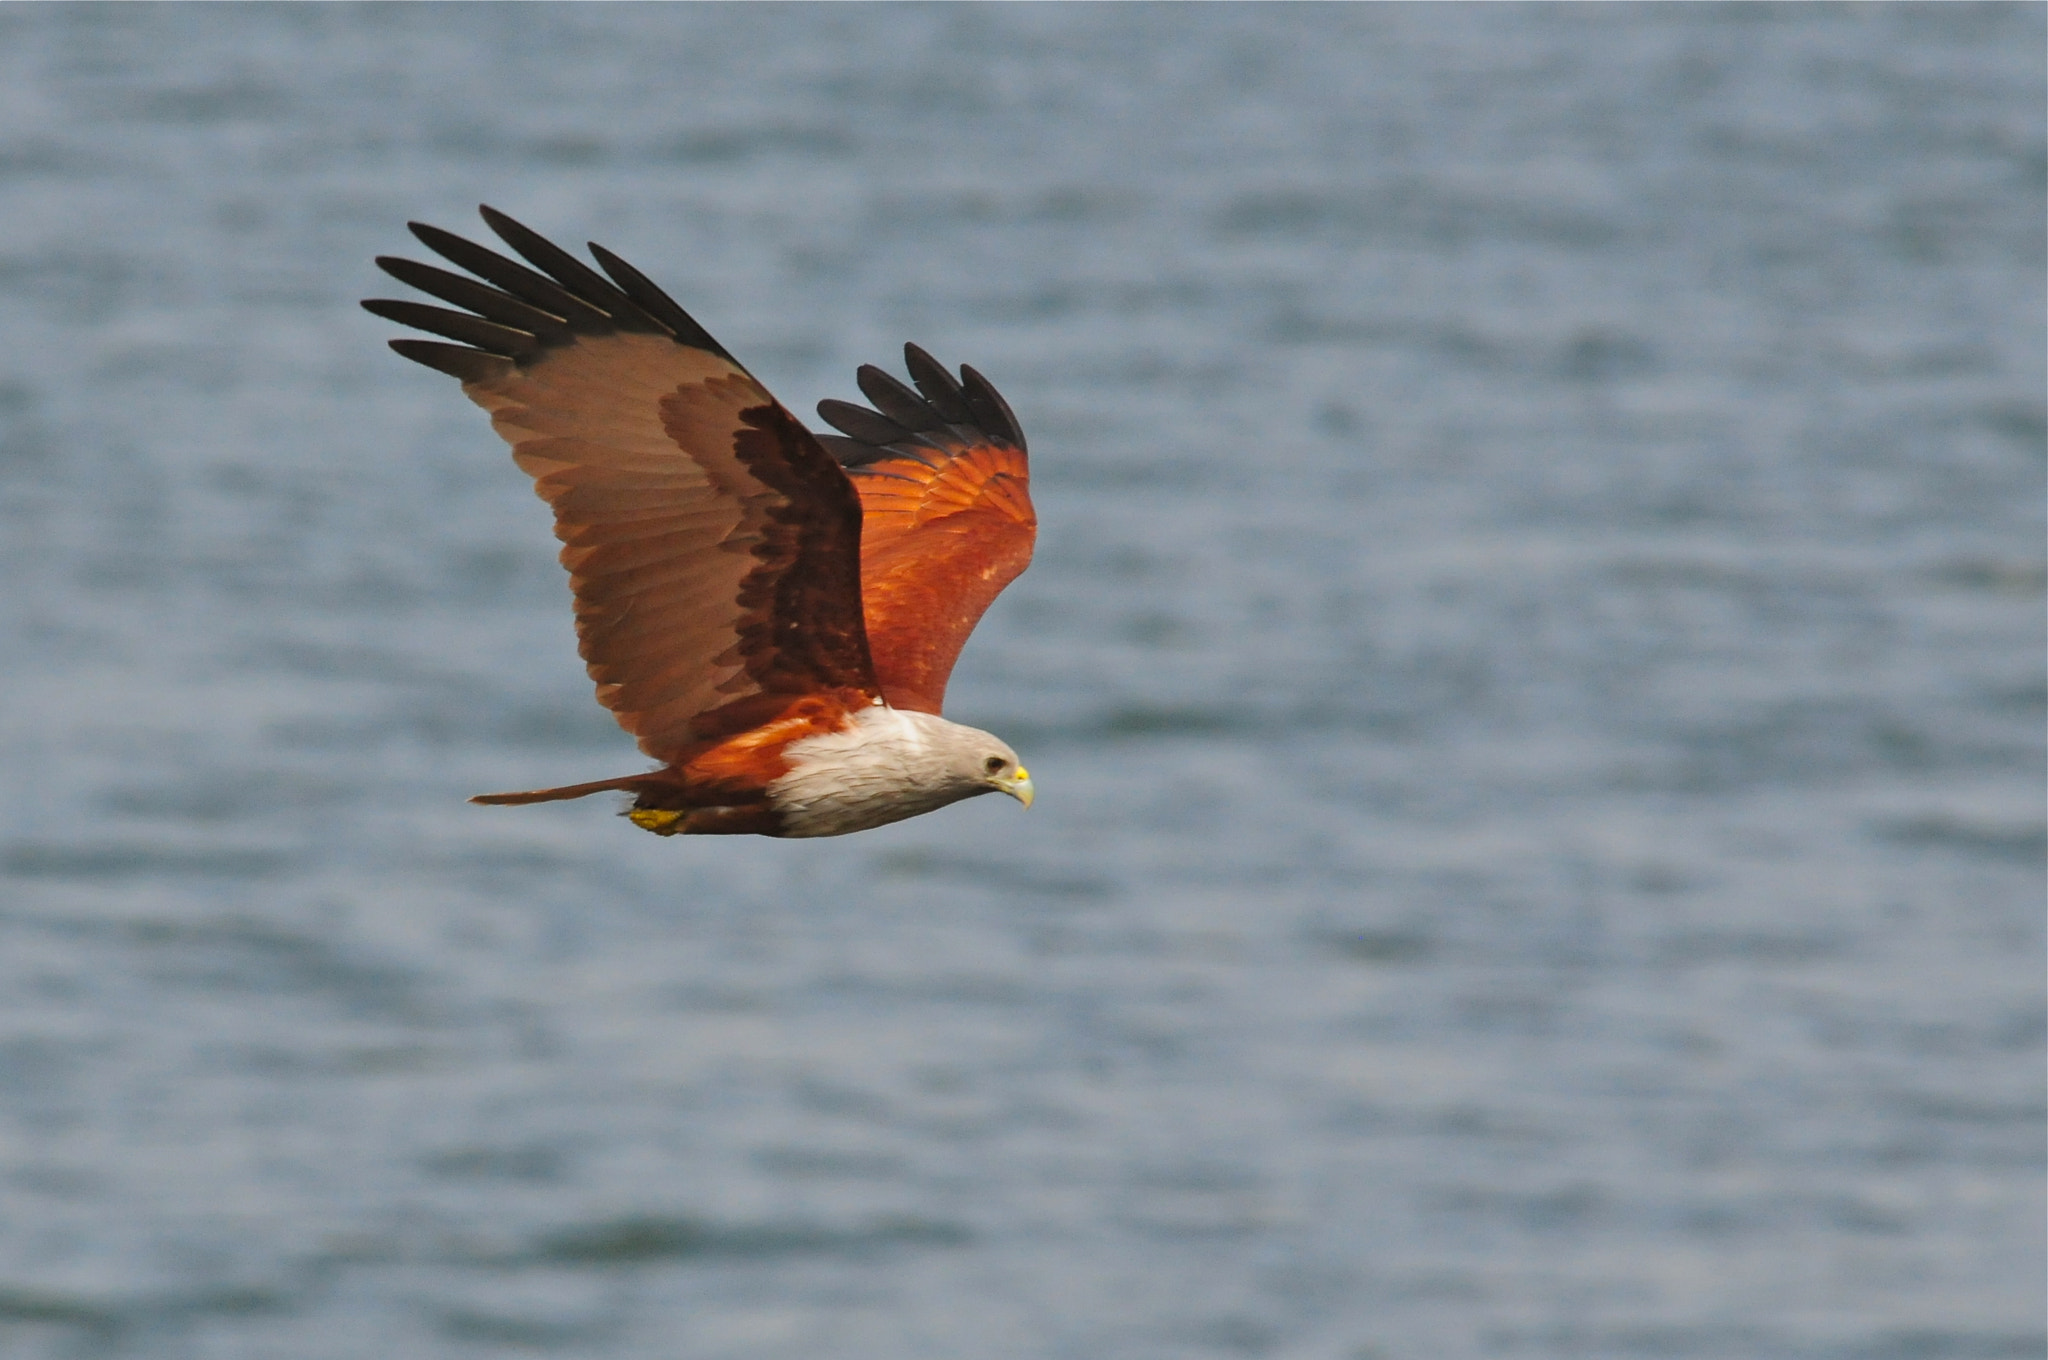 Photograph Brahminy Kite by Hermes S on 500px